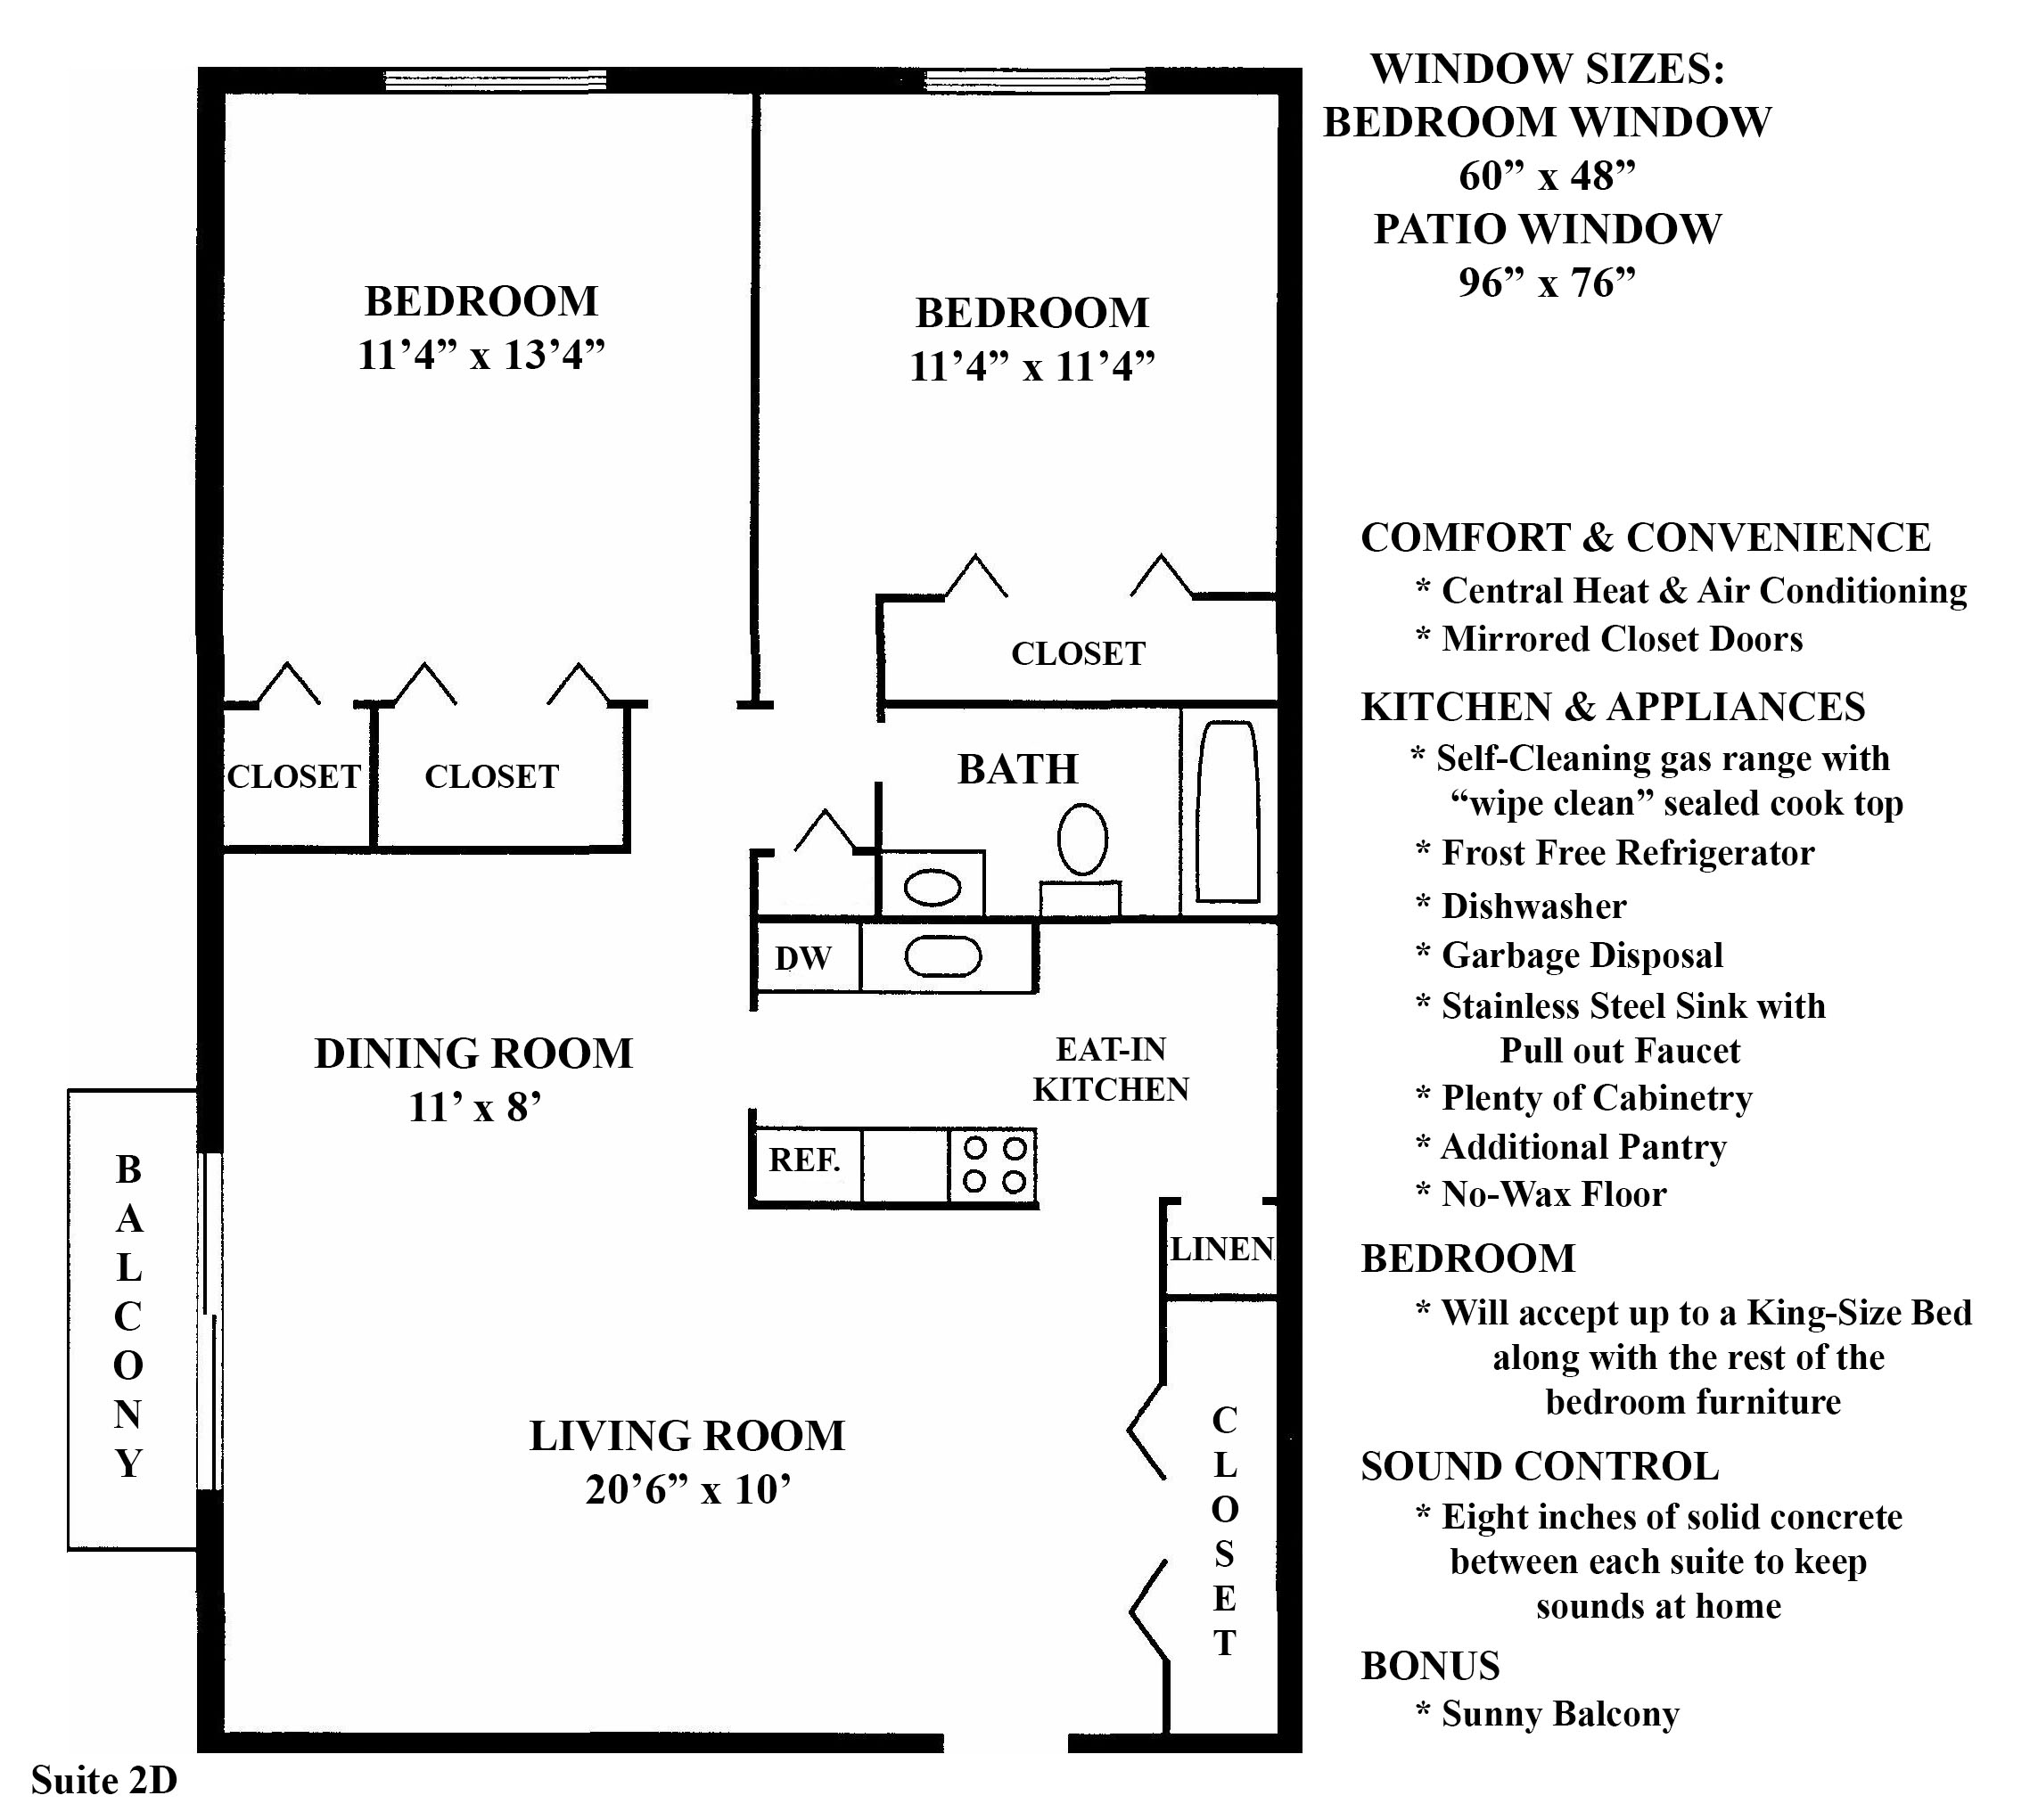 Informative Picture of 2D (2 Bedroom 1 Bath)